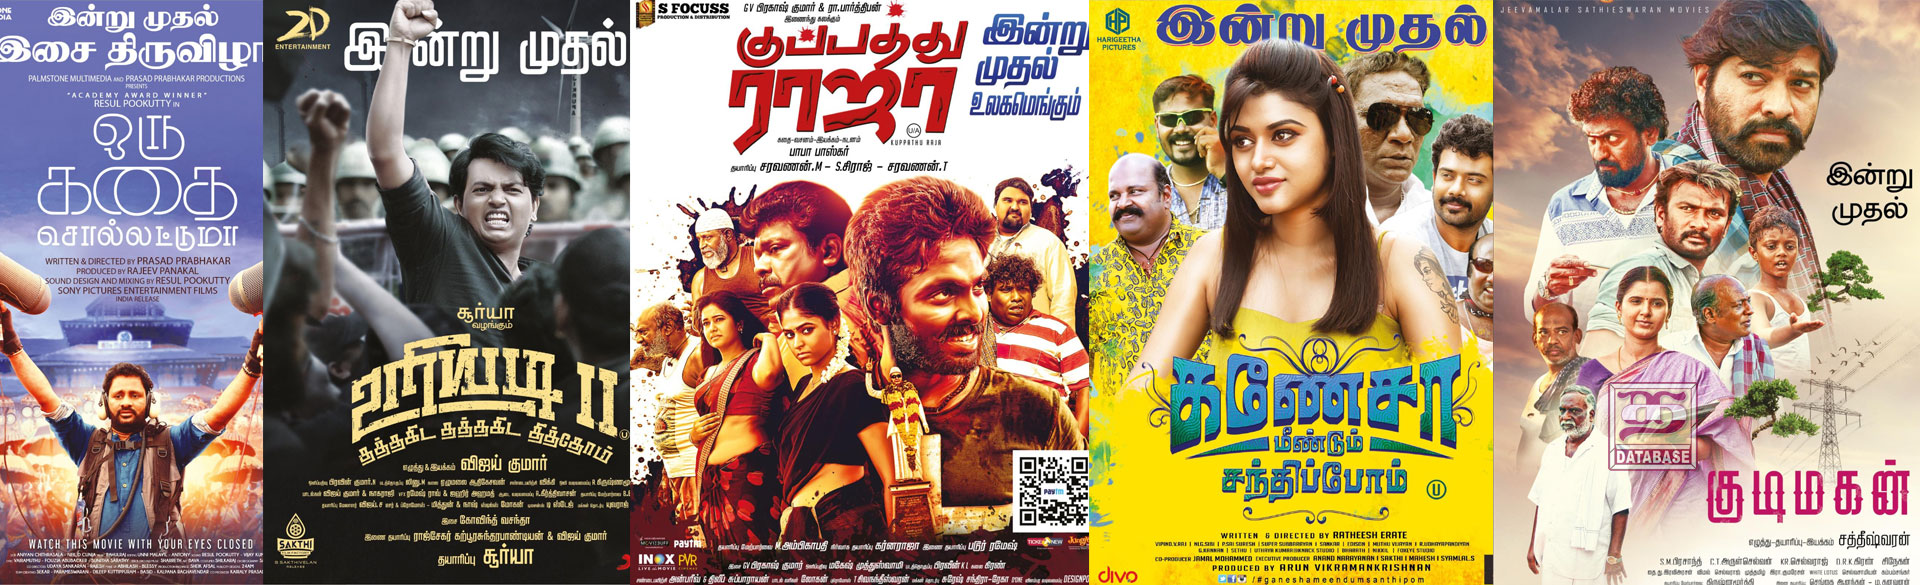 Tamil Movies Releasing Today - April 5, 2019